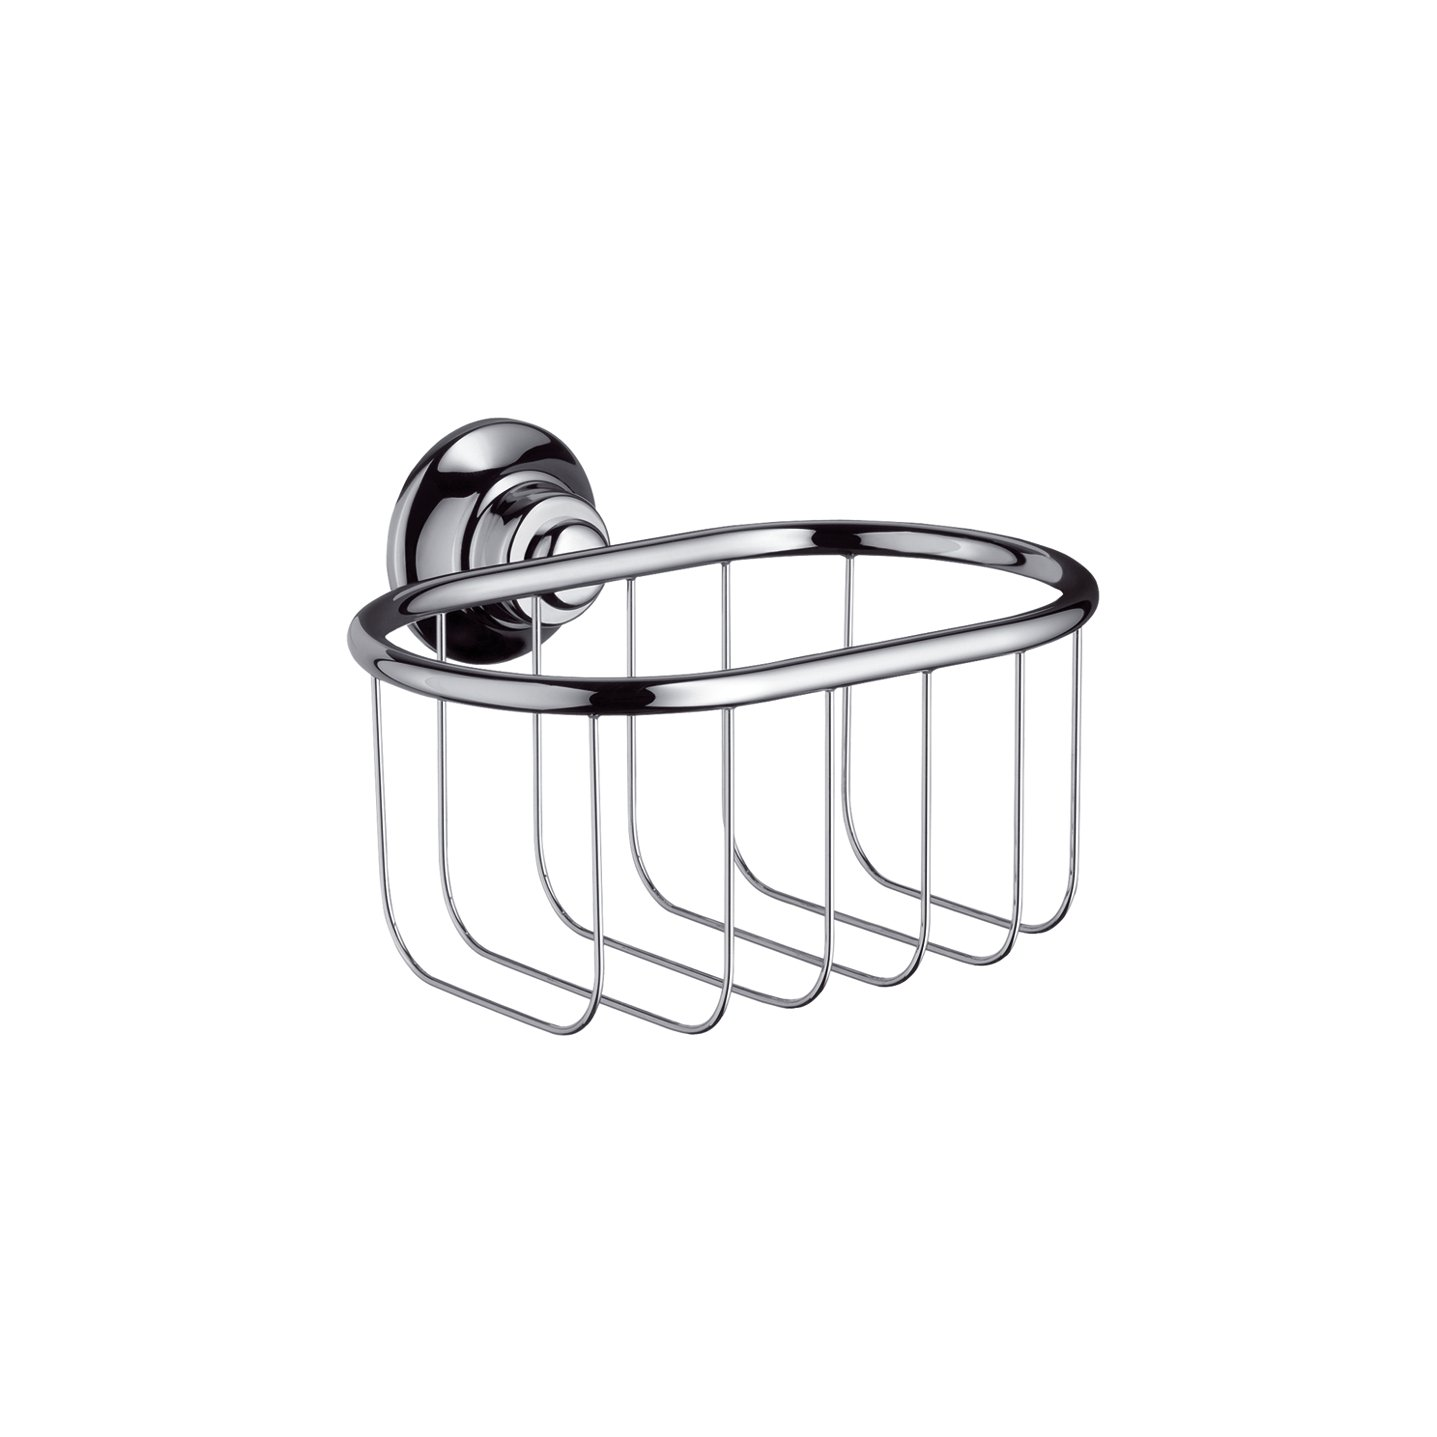 Axor 42065000 Montreux Wall-Mounted Soap Dish, Chrome